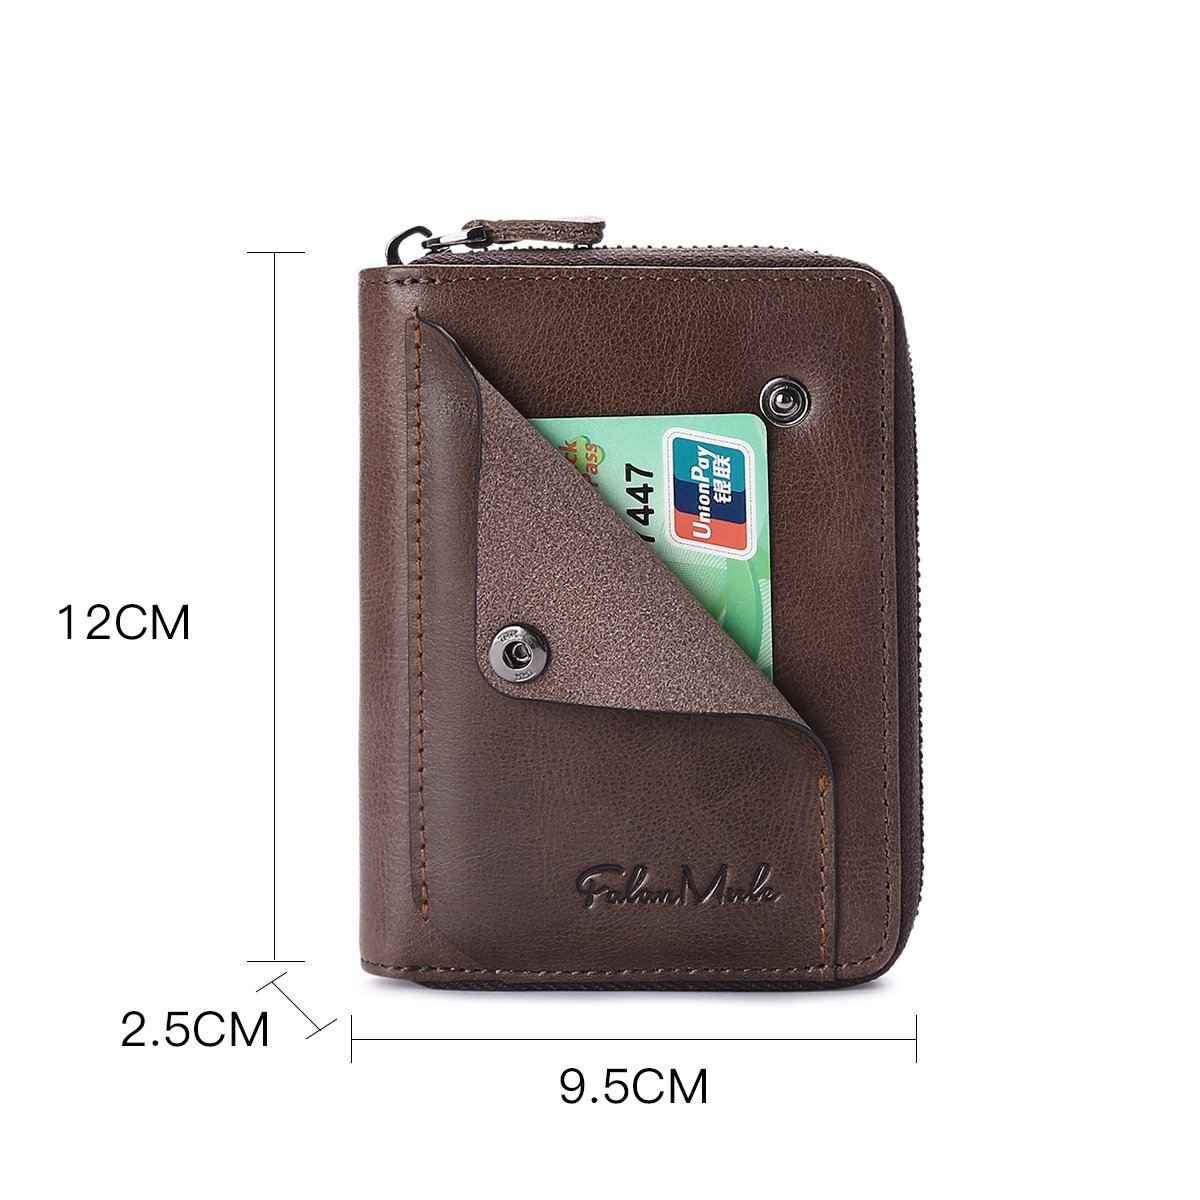 Slim Bifold RFID Blocking Men Wallet Leather Front Pocket Compact Design Zipper Closure Minimalist by Falan Mule (Image #3)